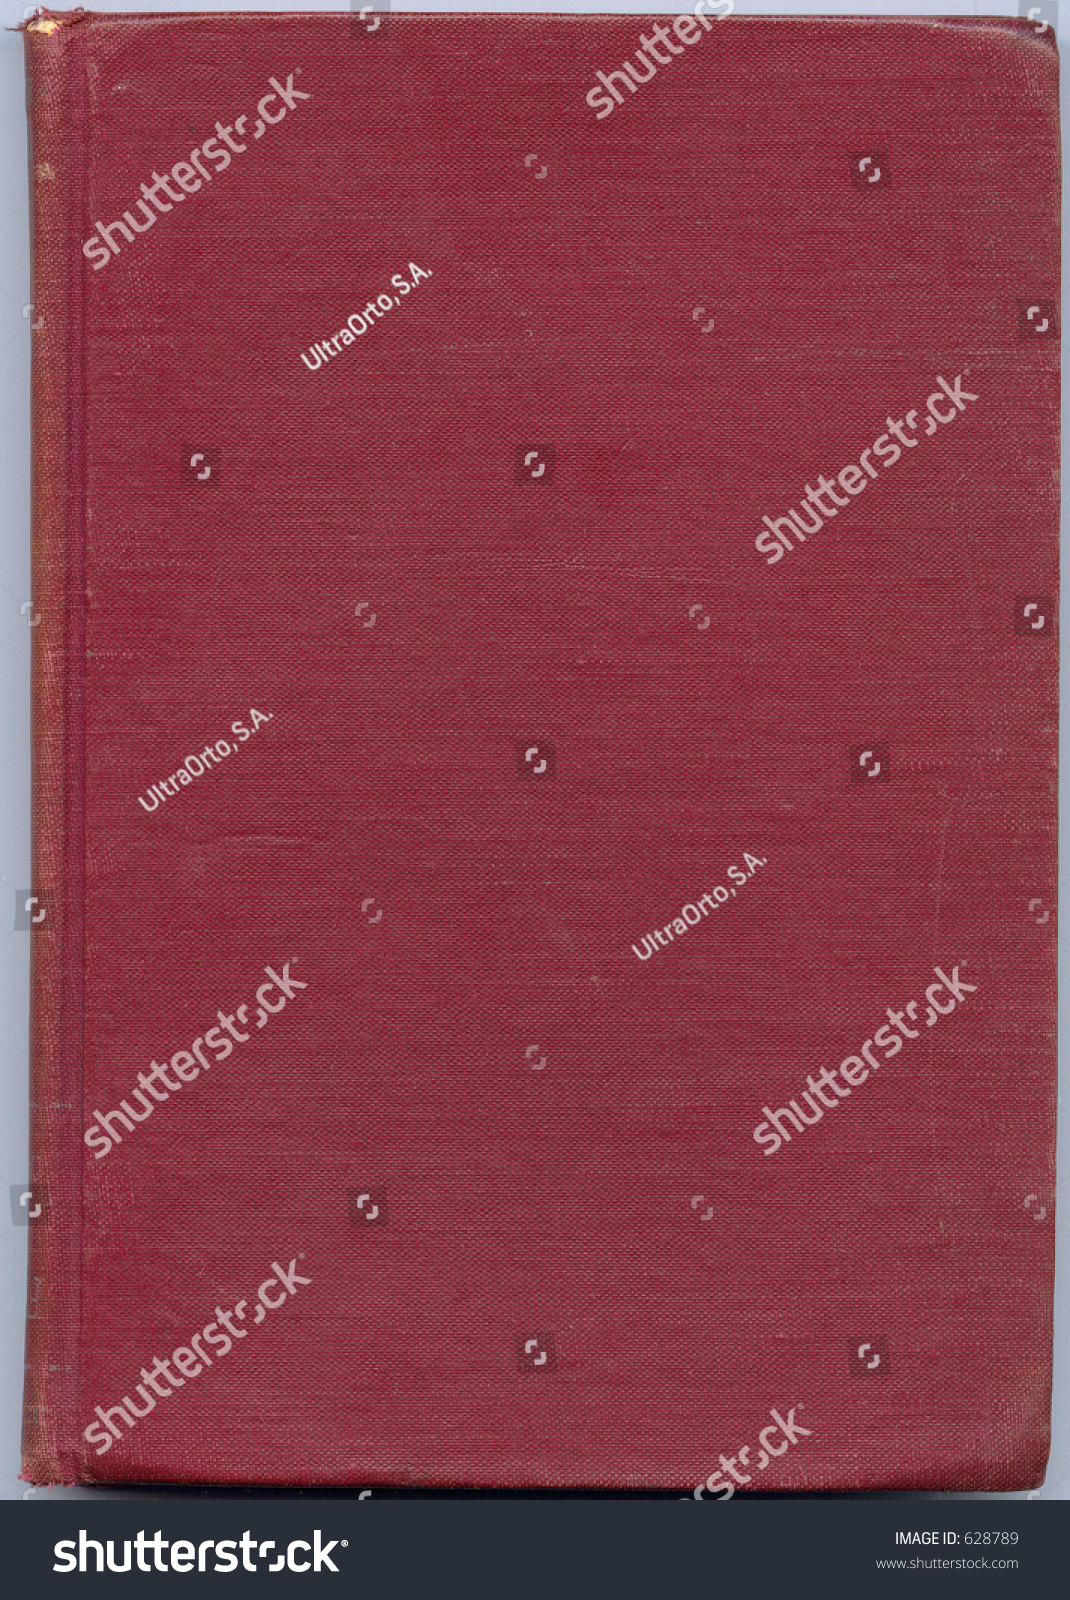 Good Book Cover Backgrounds : Old book page cover texture good for background stock